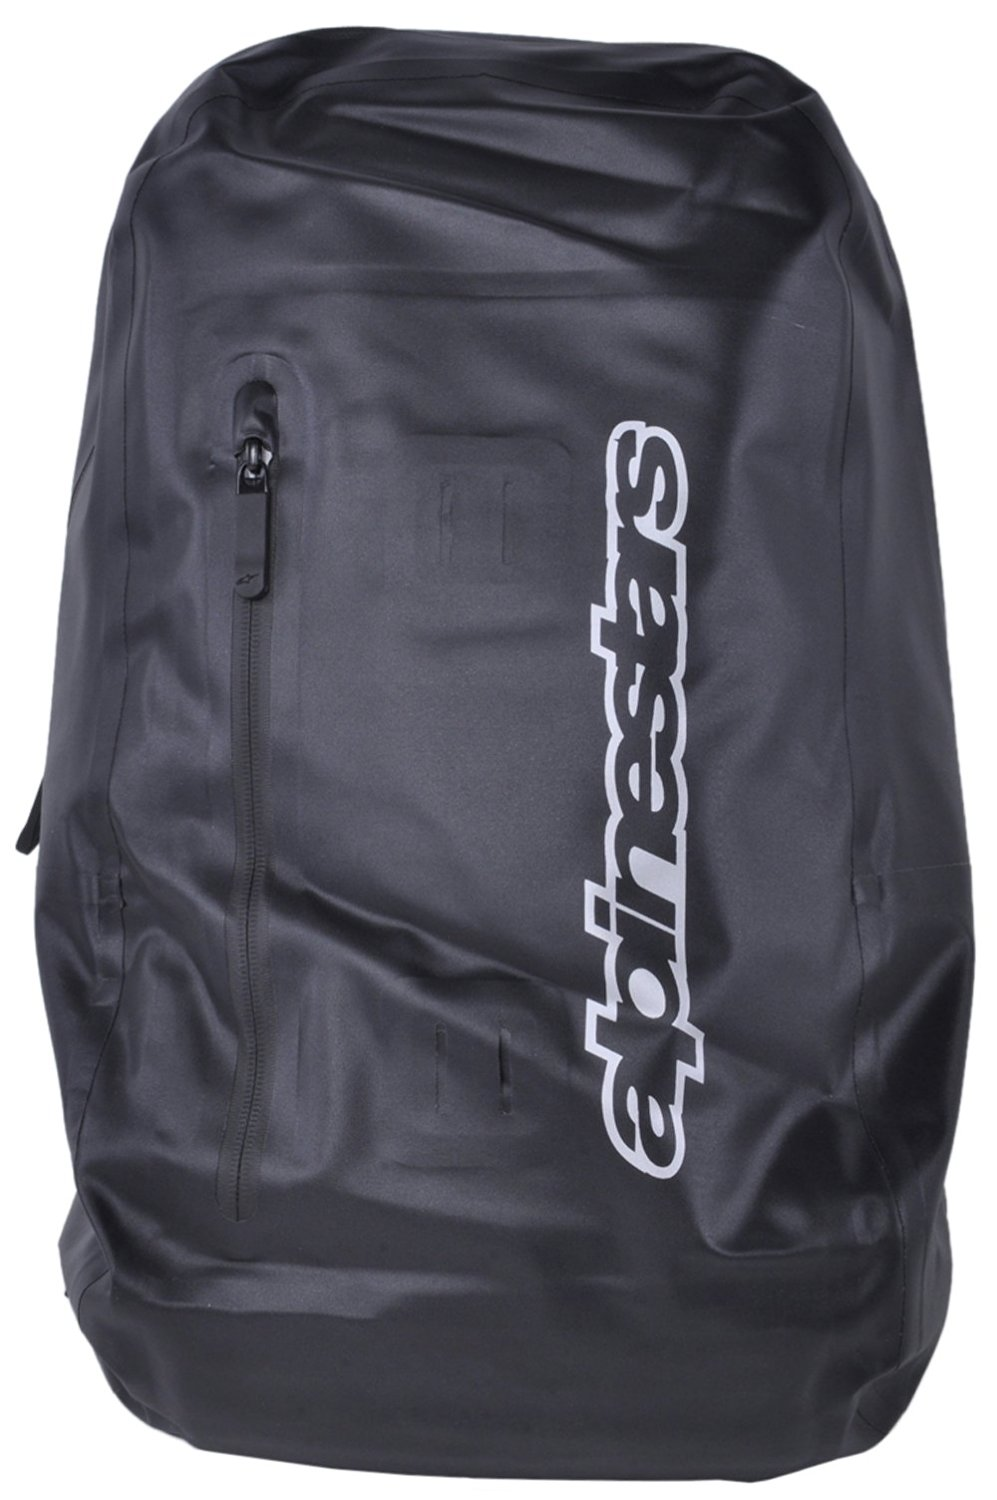 9c059aa774e Alpinestars Trader Day Pack Surf Series Waterproof Back Pack